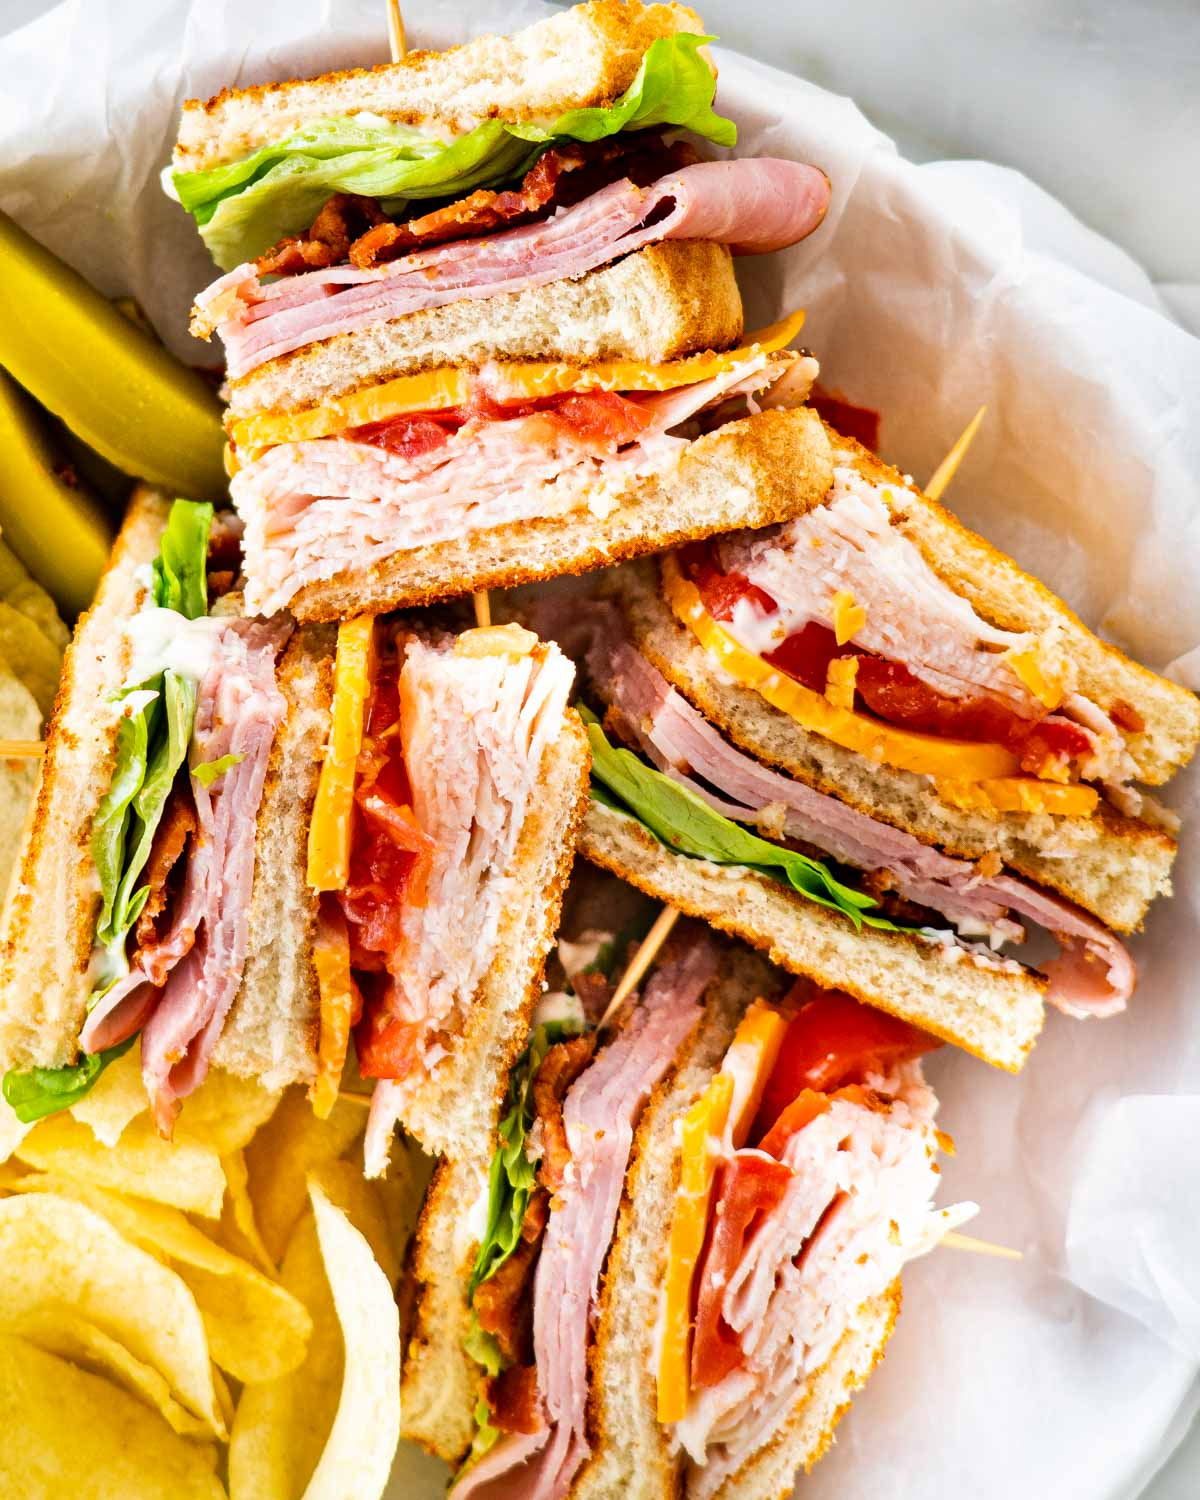 overhead of a club sandwich cut in quarters with a side of chips and pickles in a basket.